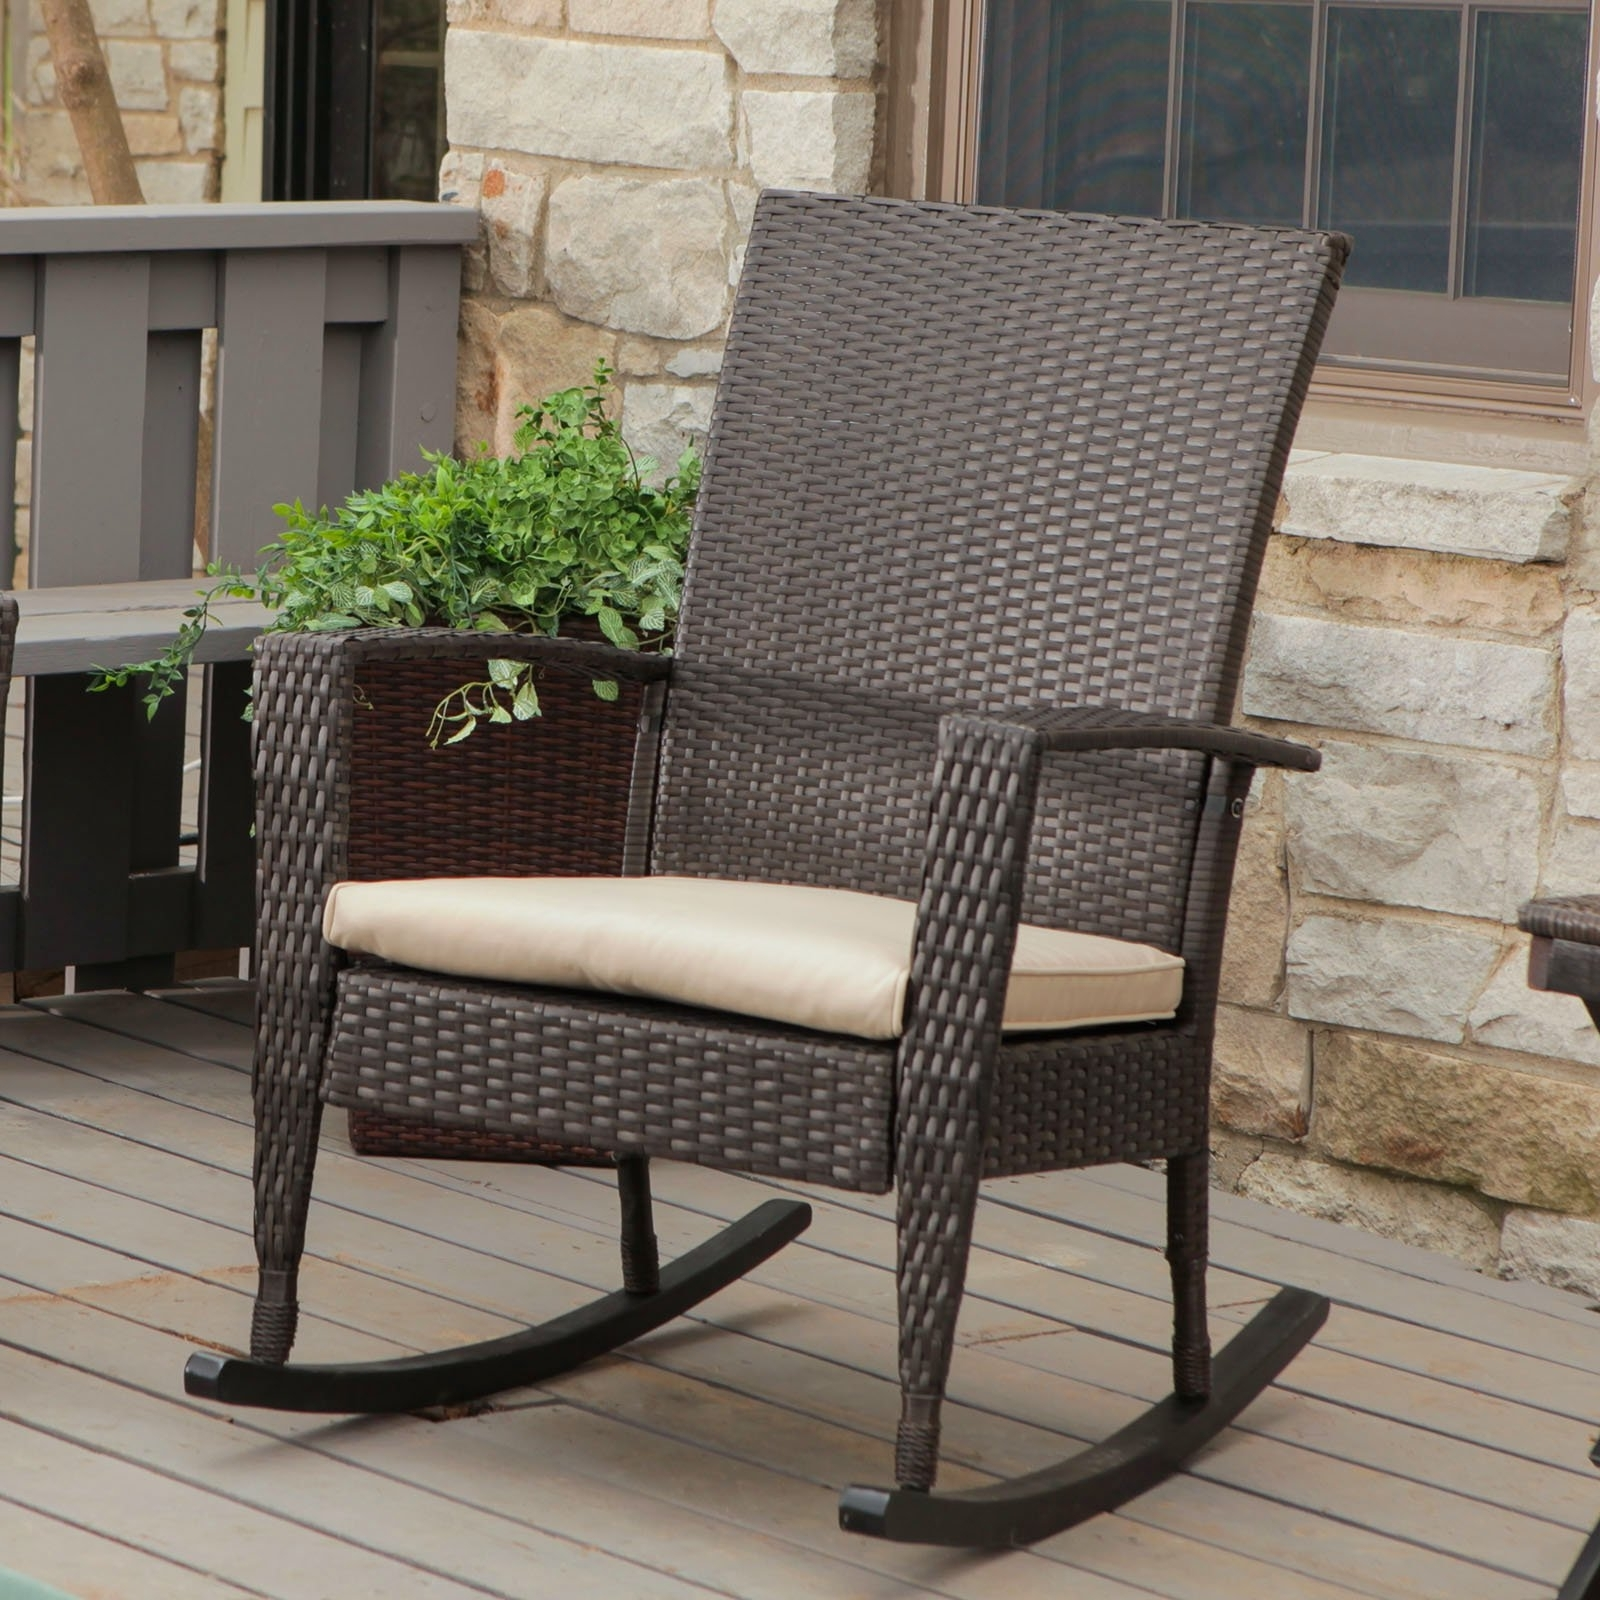 Patio Rocking Chairs Pertaining To Famous Resin Patio Rocking Chairs : Spectacular And Sensational Patio (View 12 of 20)